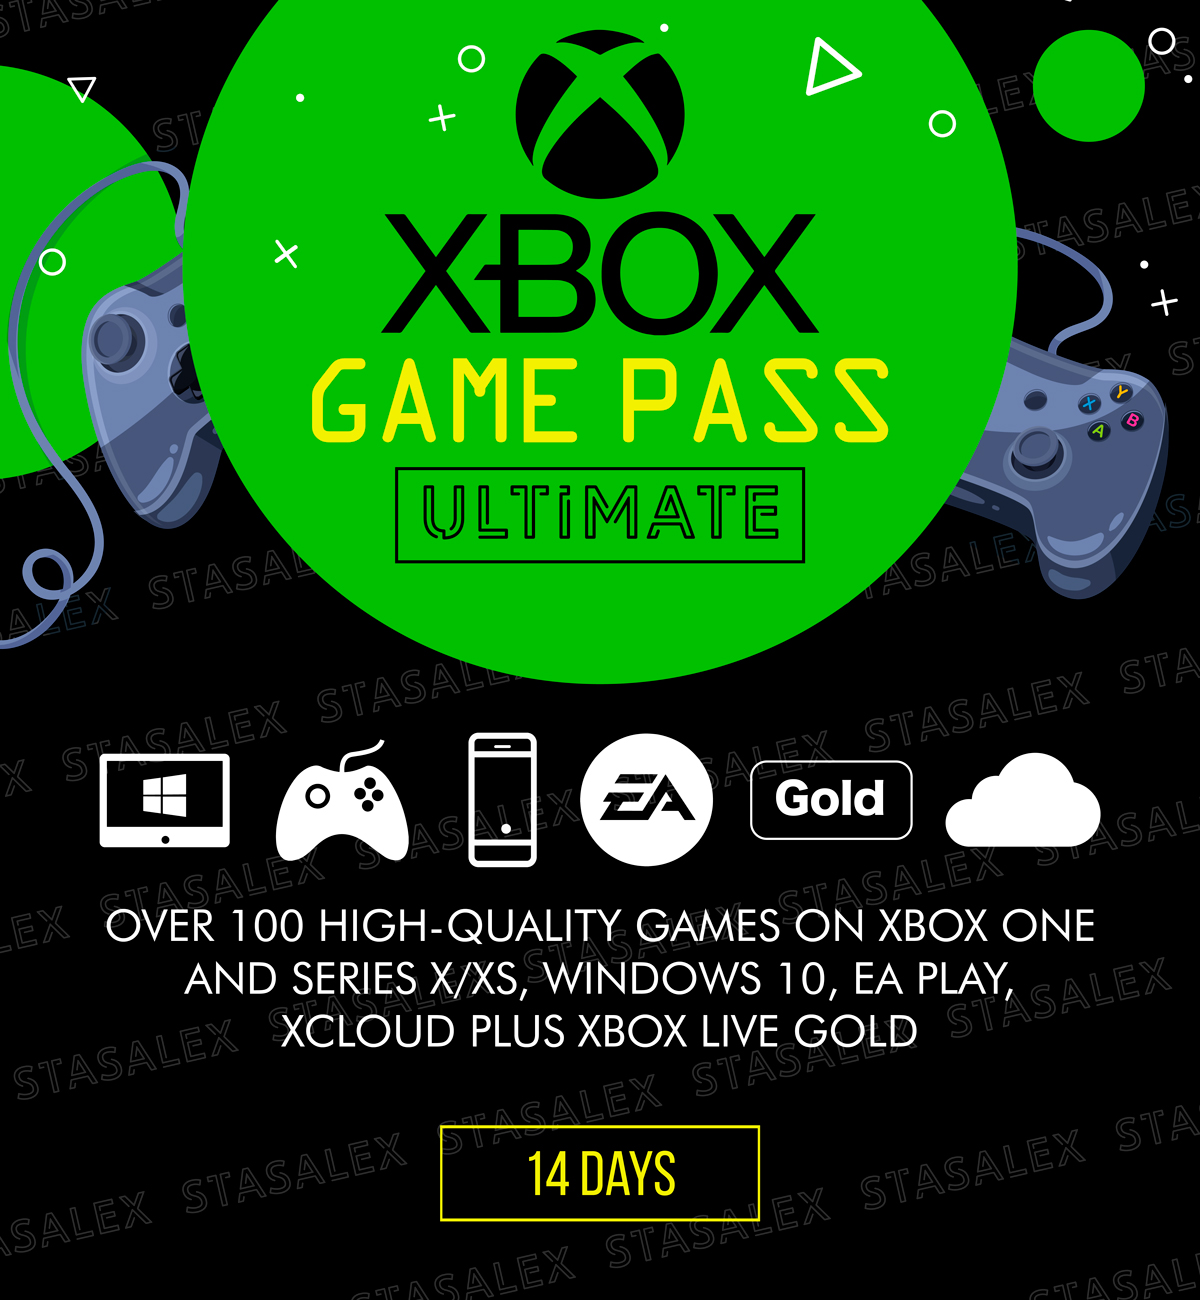 XBOX GAME PASS ULTIMATE 14 DAYS + EA PLAY + GOLD